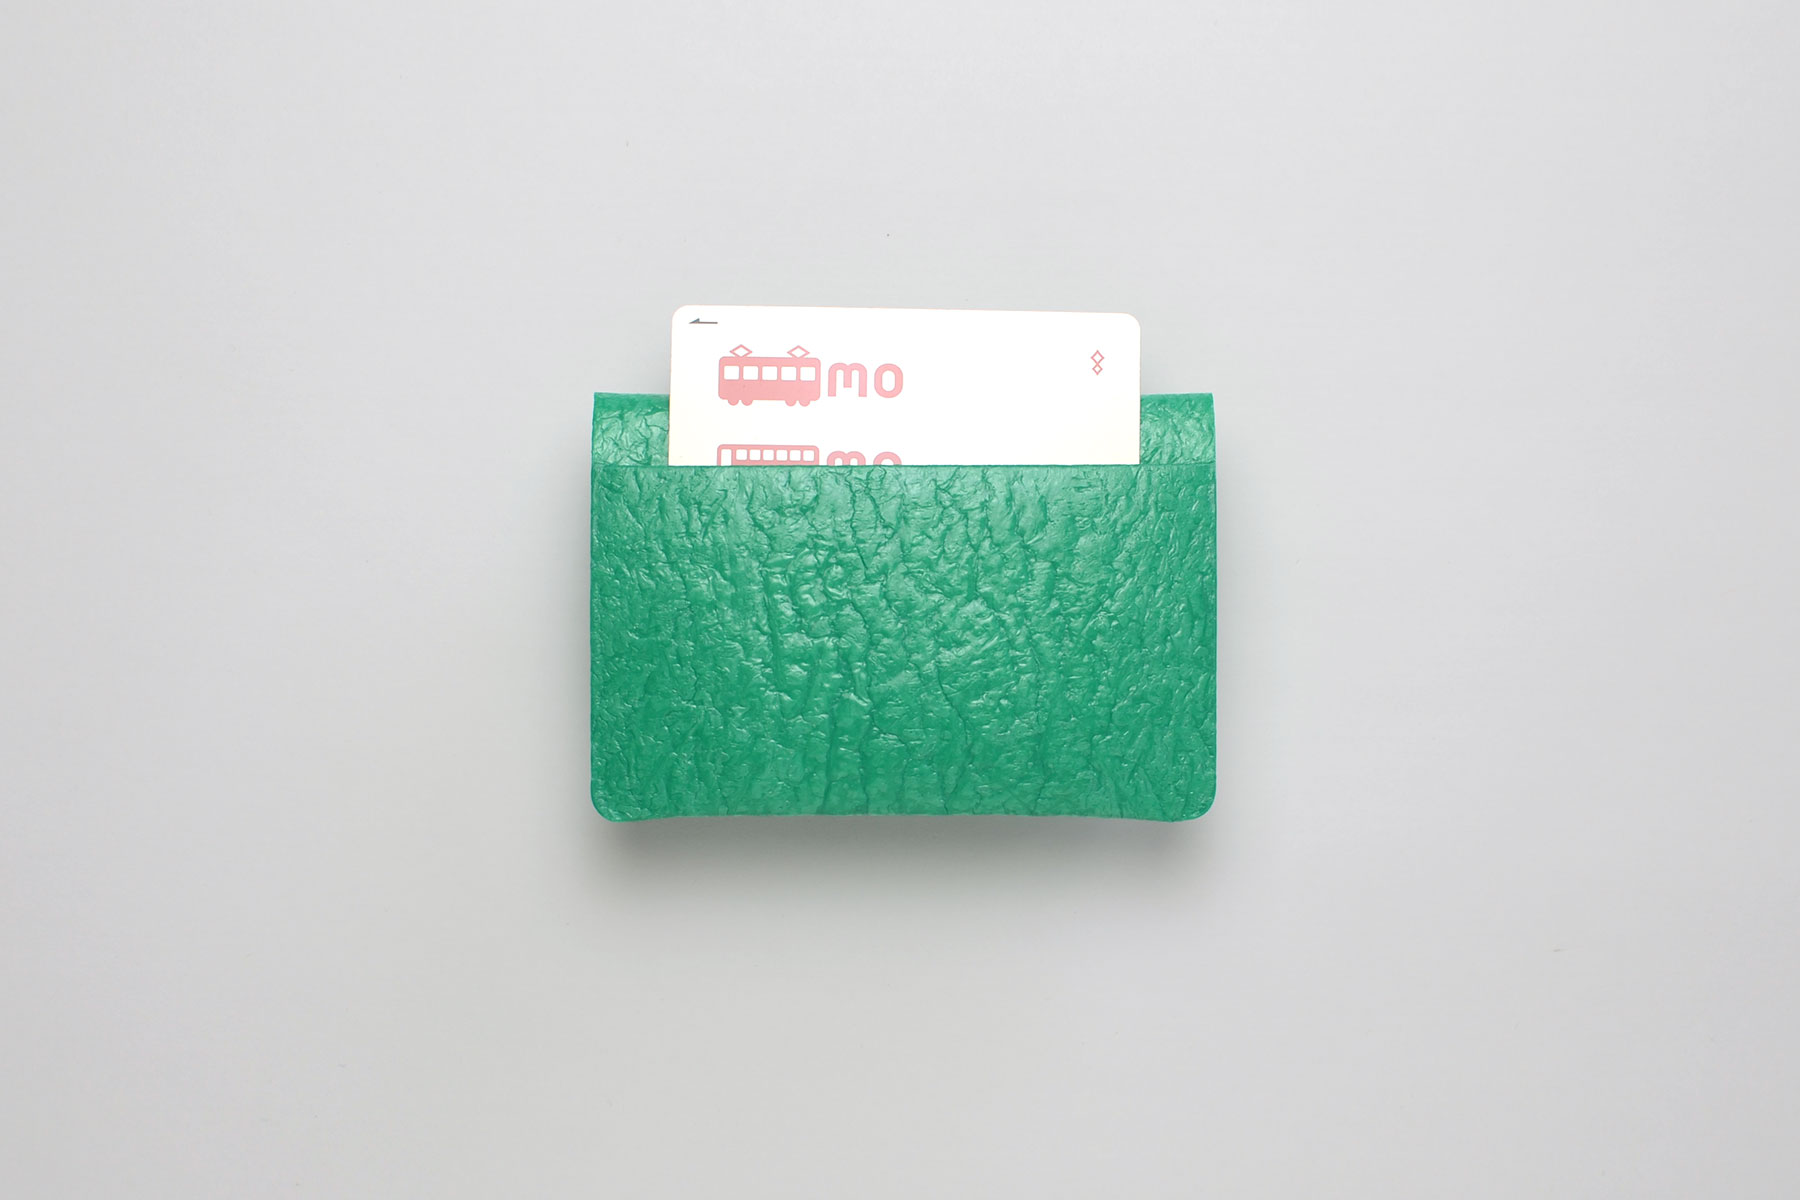 PE CARD CASE_EMARALD GREEM